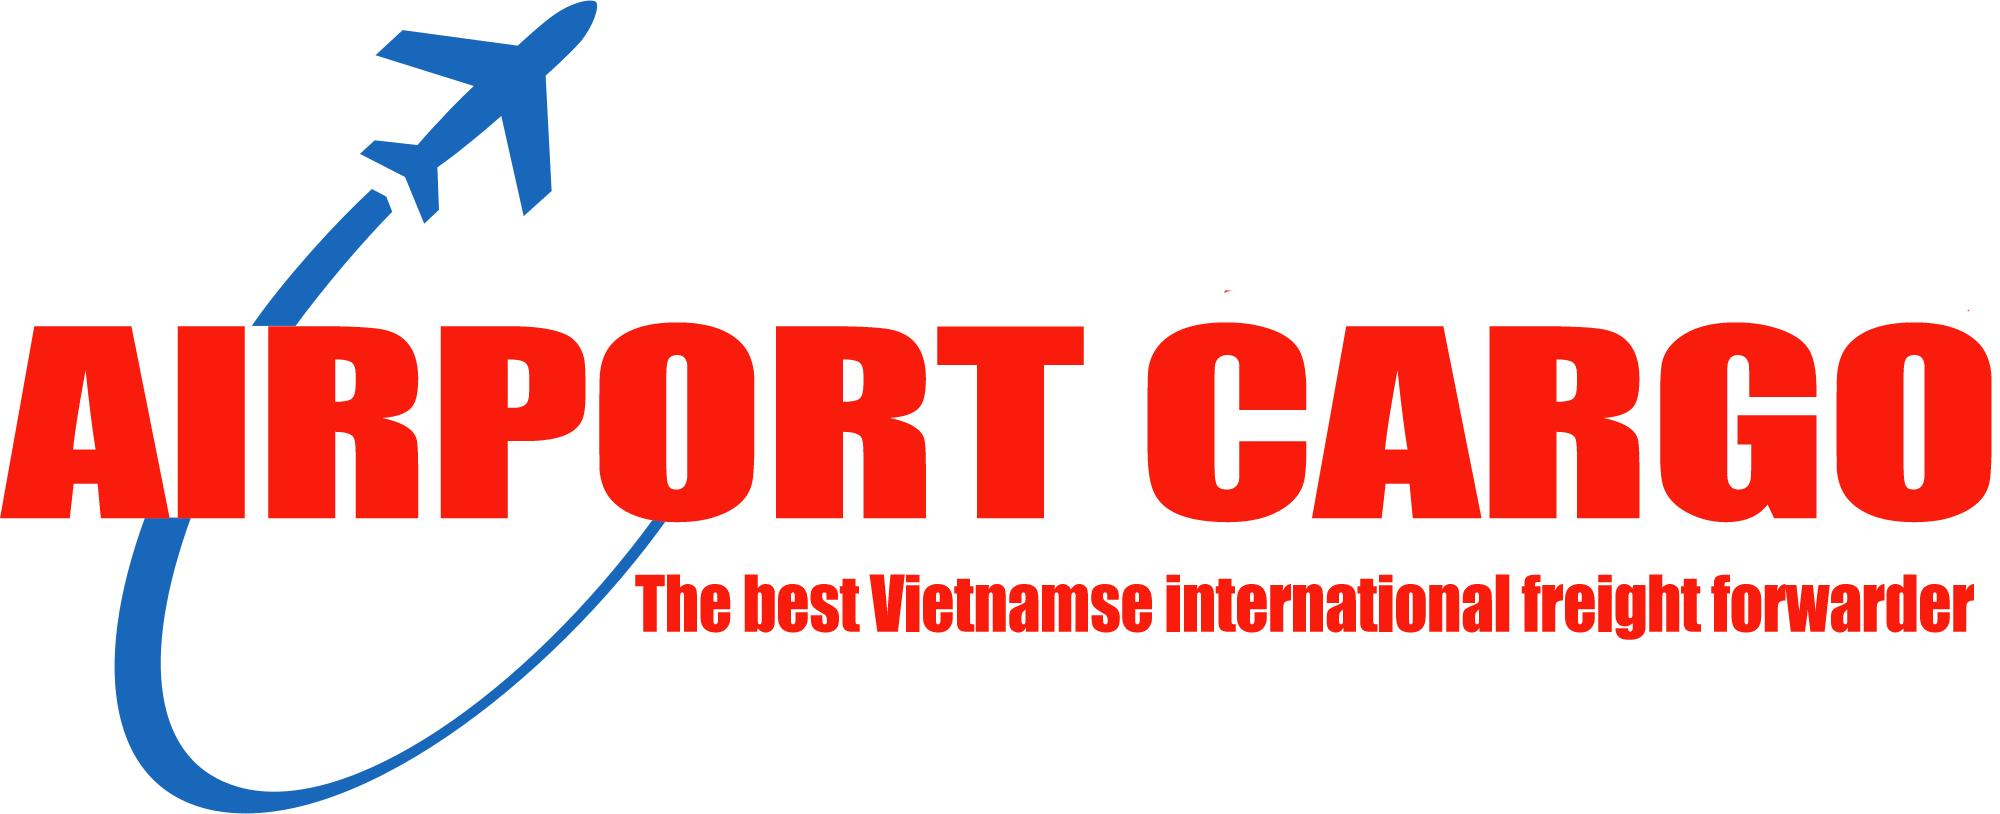 Logistic, Express Cargo Air Freight in Vietnam